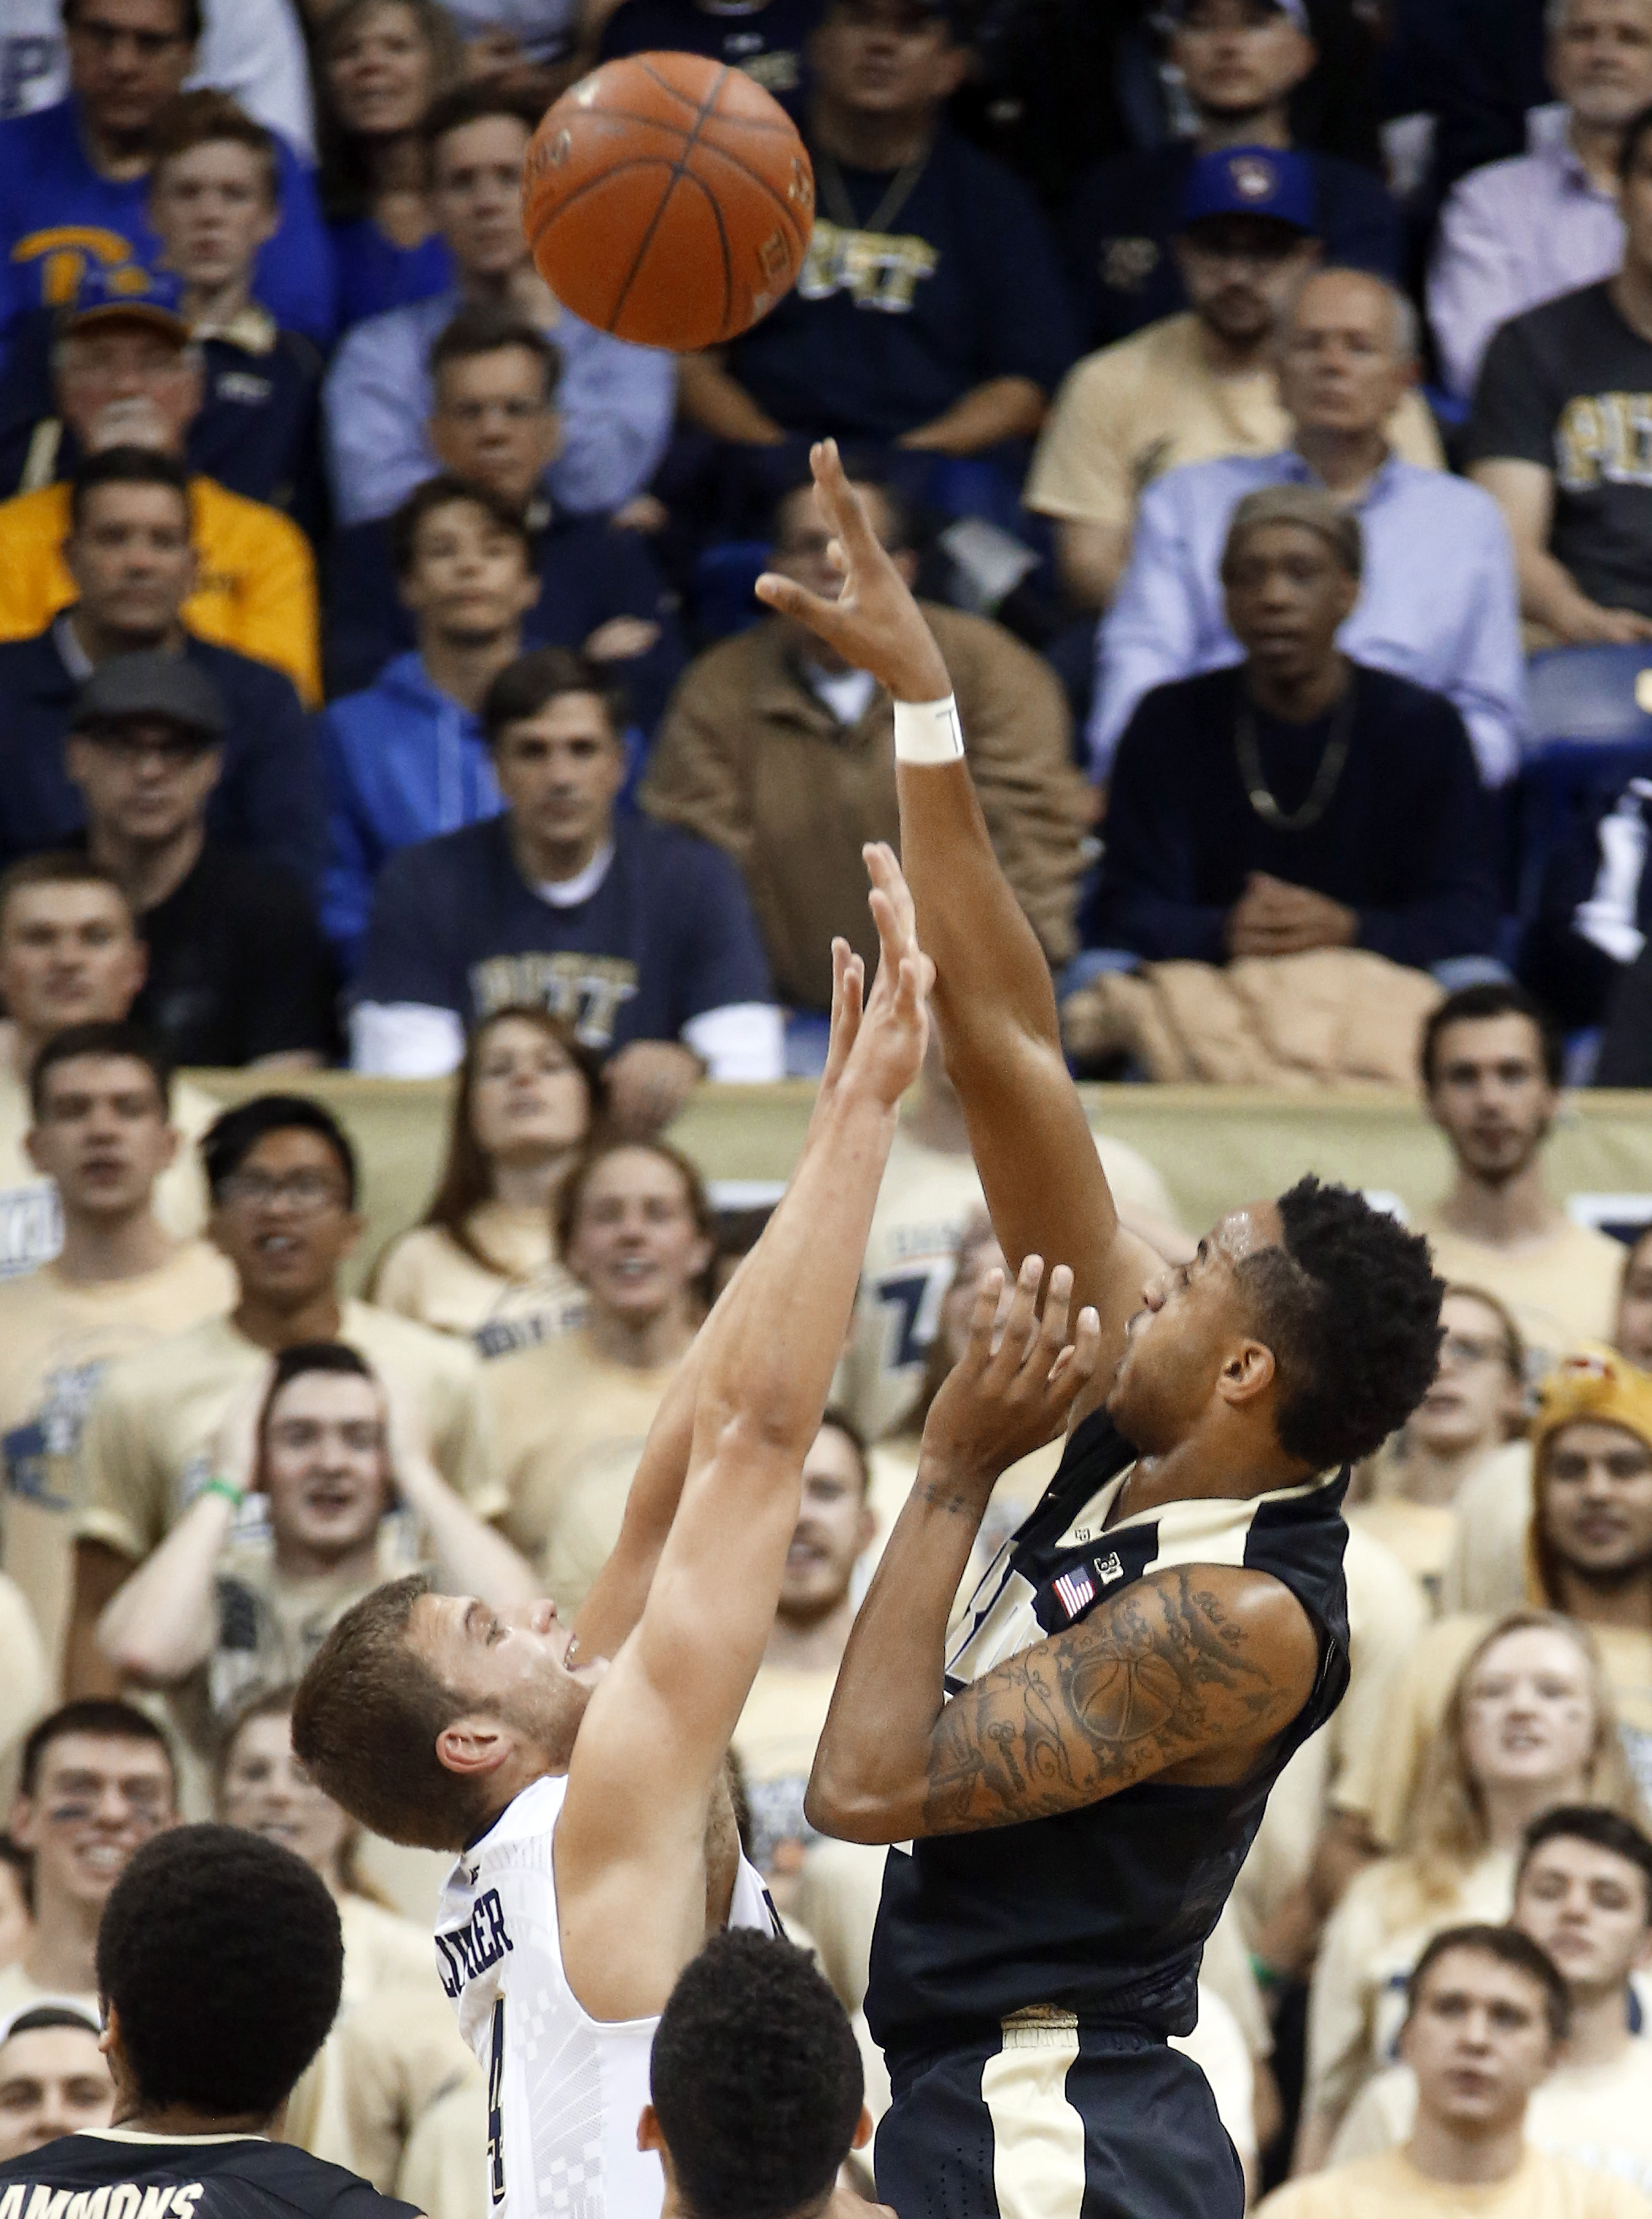 Purdue's Vince Edwards, right, shoots for three over Pittsburgh's Rafael Maia in the first half of an NCAA college basketball game, Tuesday, Dec. 1, 2015, in Pittsburgh. (AP Photo/Keith Srakocic)